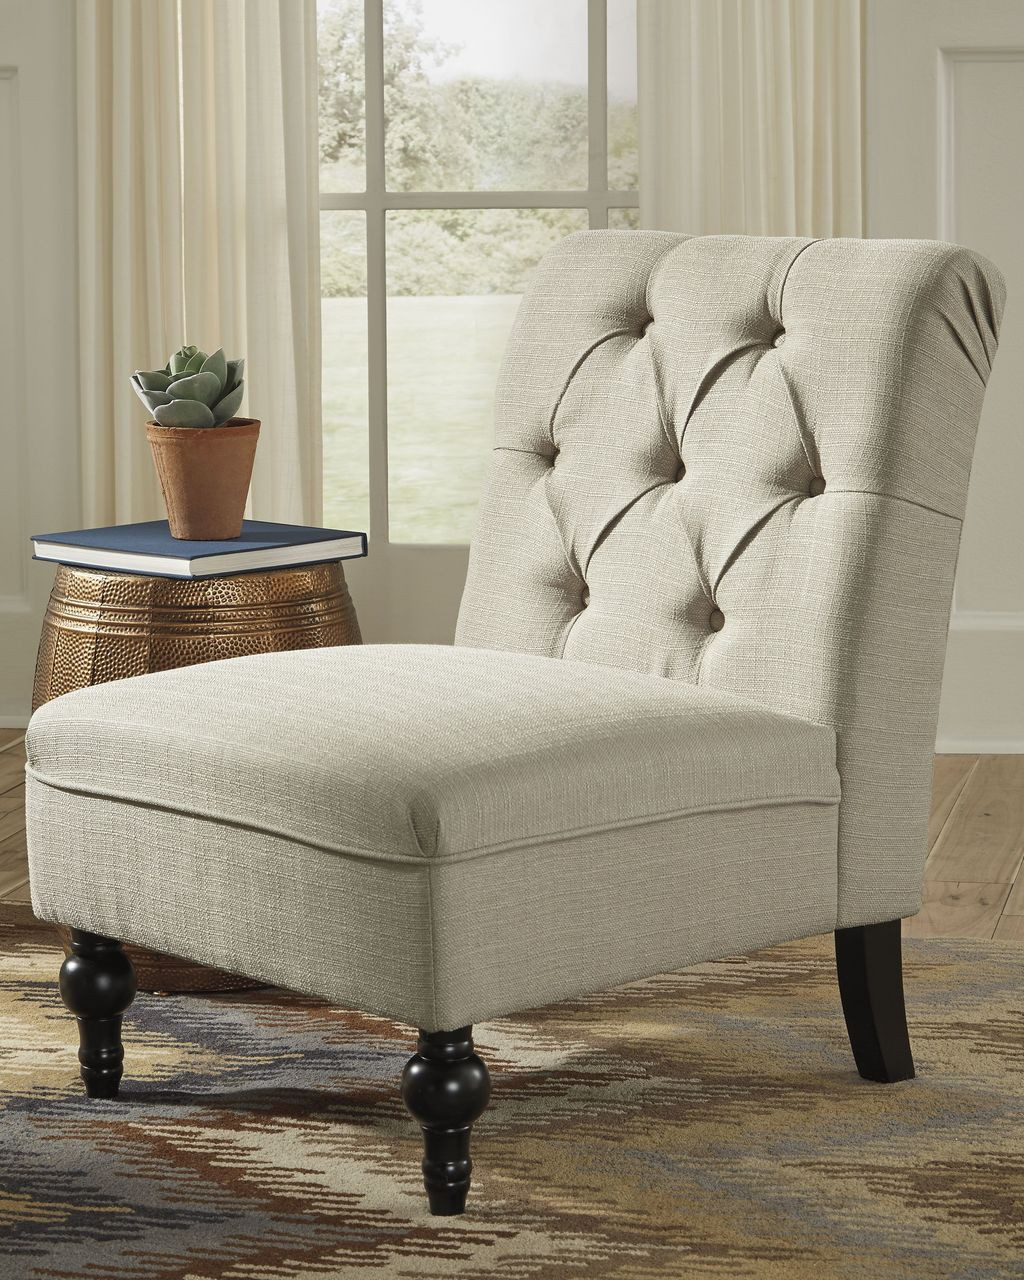 Incredible Degas Oatmeal Accent Chair Creativecarmelina Interior Chair Design Creativecarmelinacom